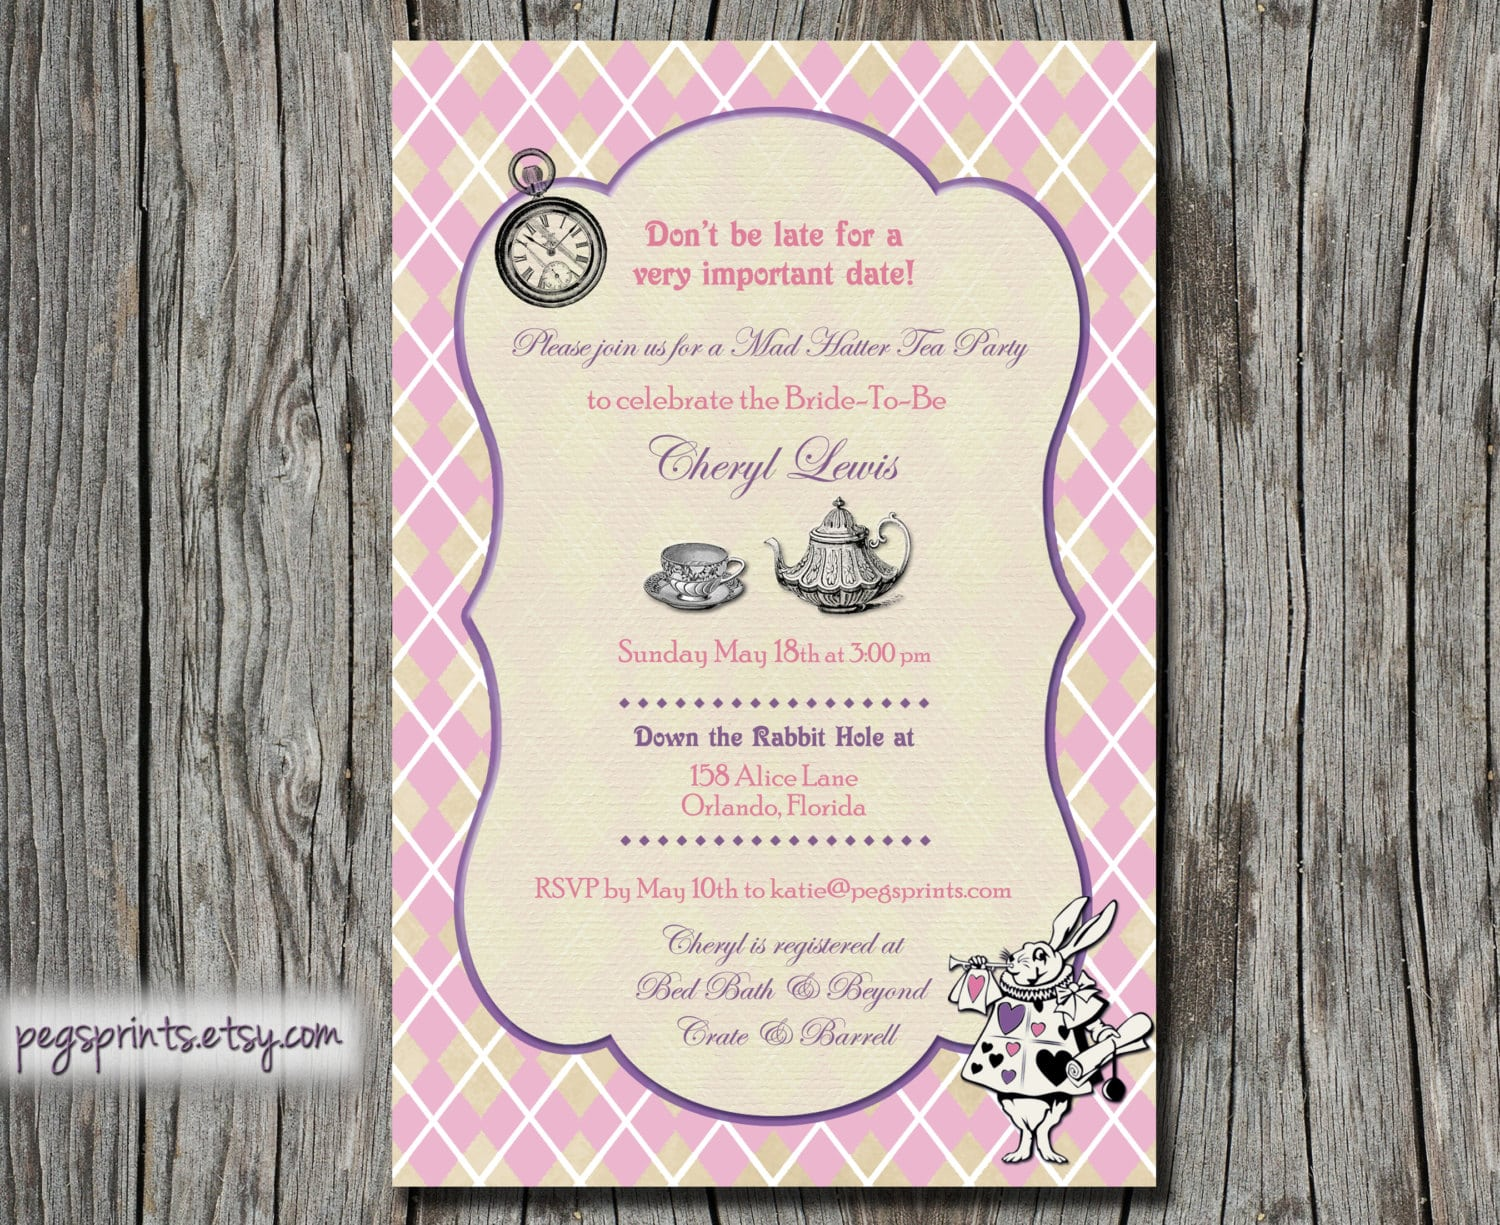 Mad hatter tea party invitation wording stopboris Gallery